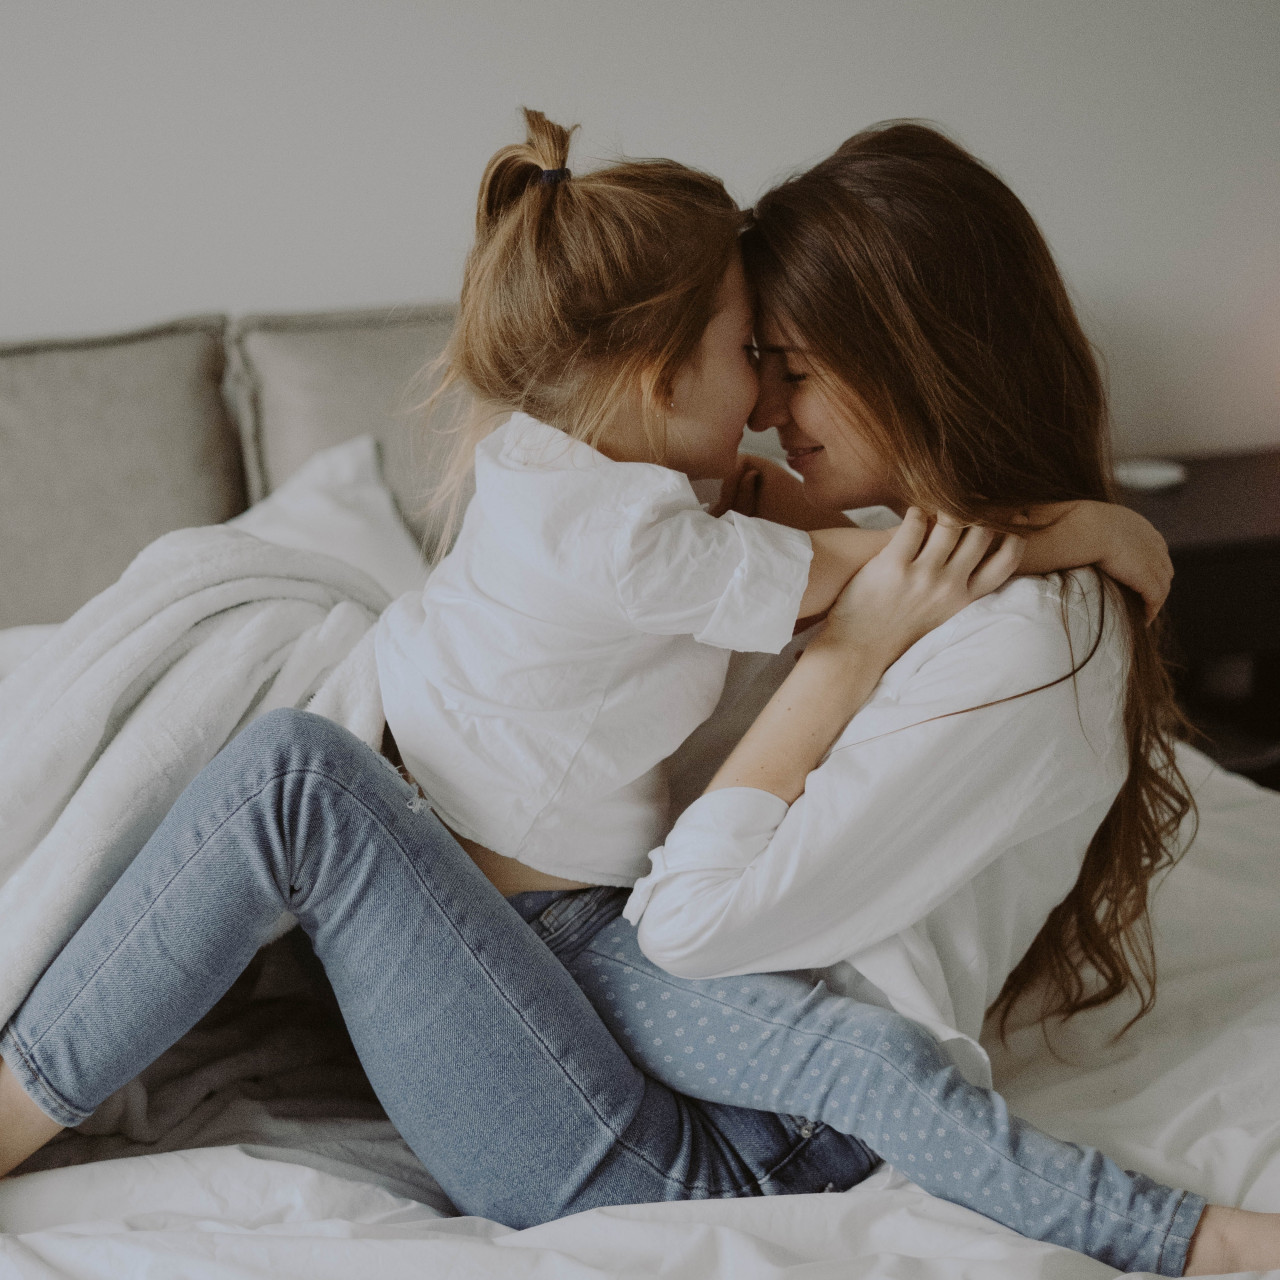 mother and child embracing in bed